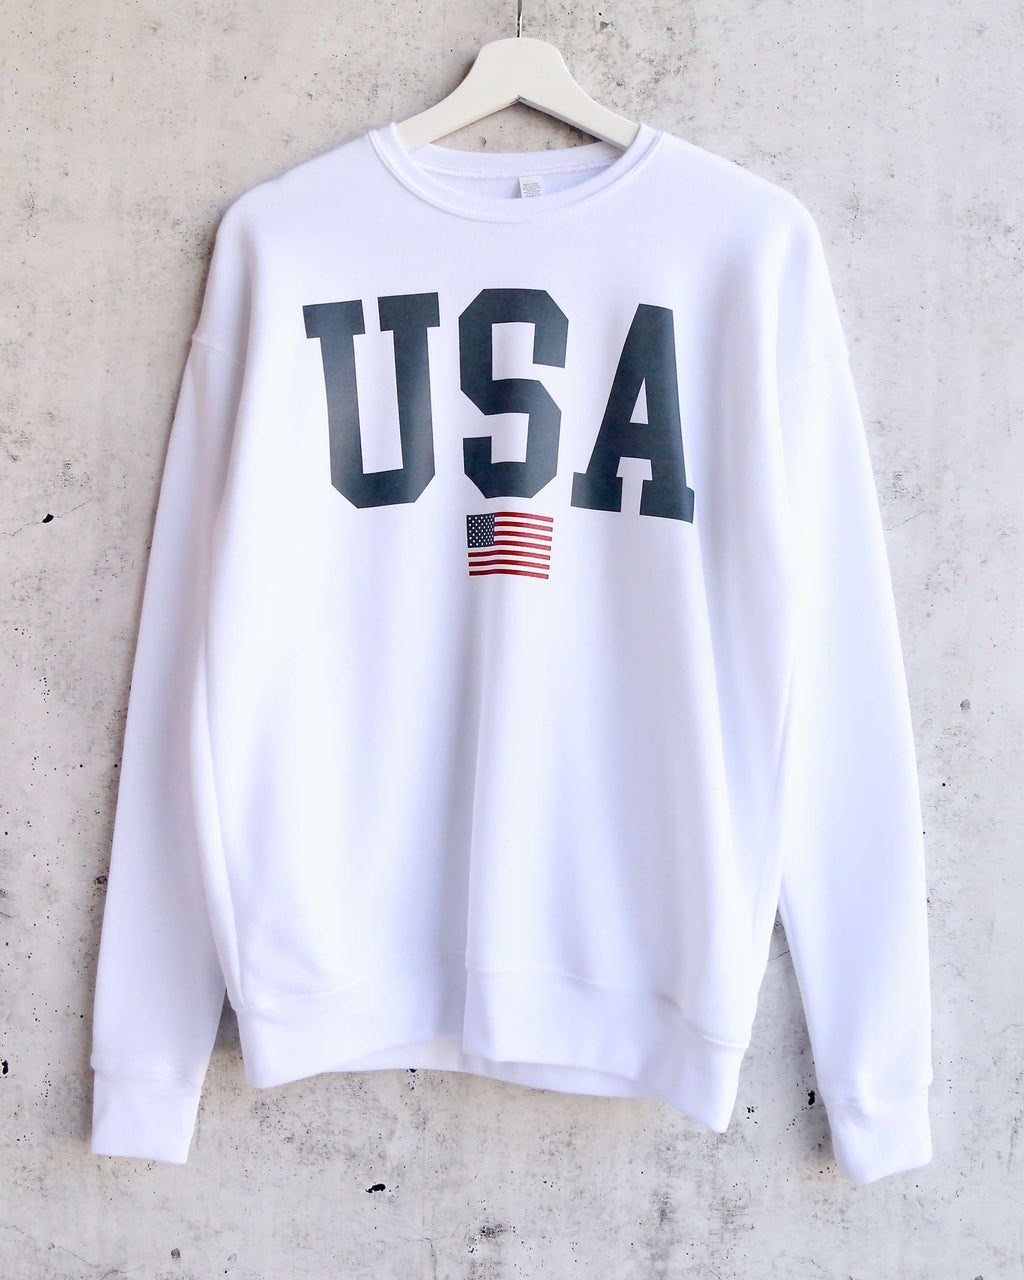 4c2b2ea36 Distracted - USA Graphic Unisex Sponge Fleece Drop Shoulder Pullover  Sweatshirt - white